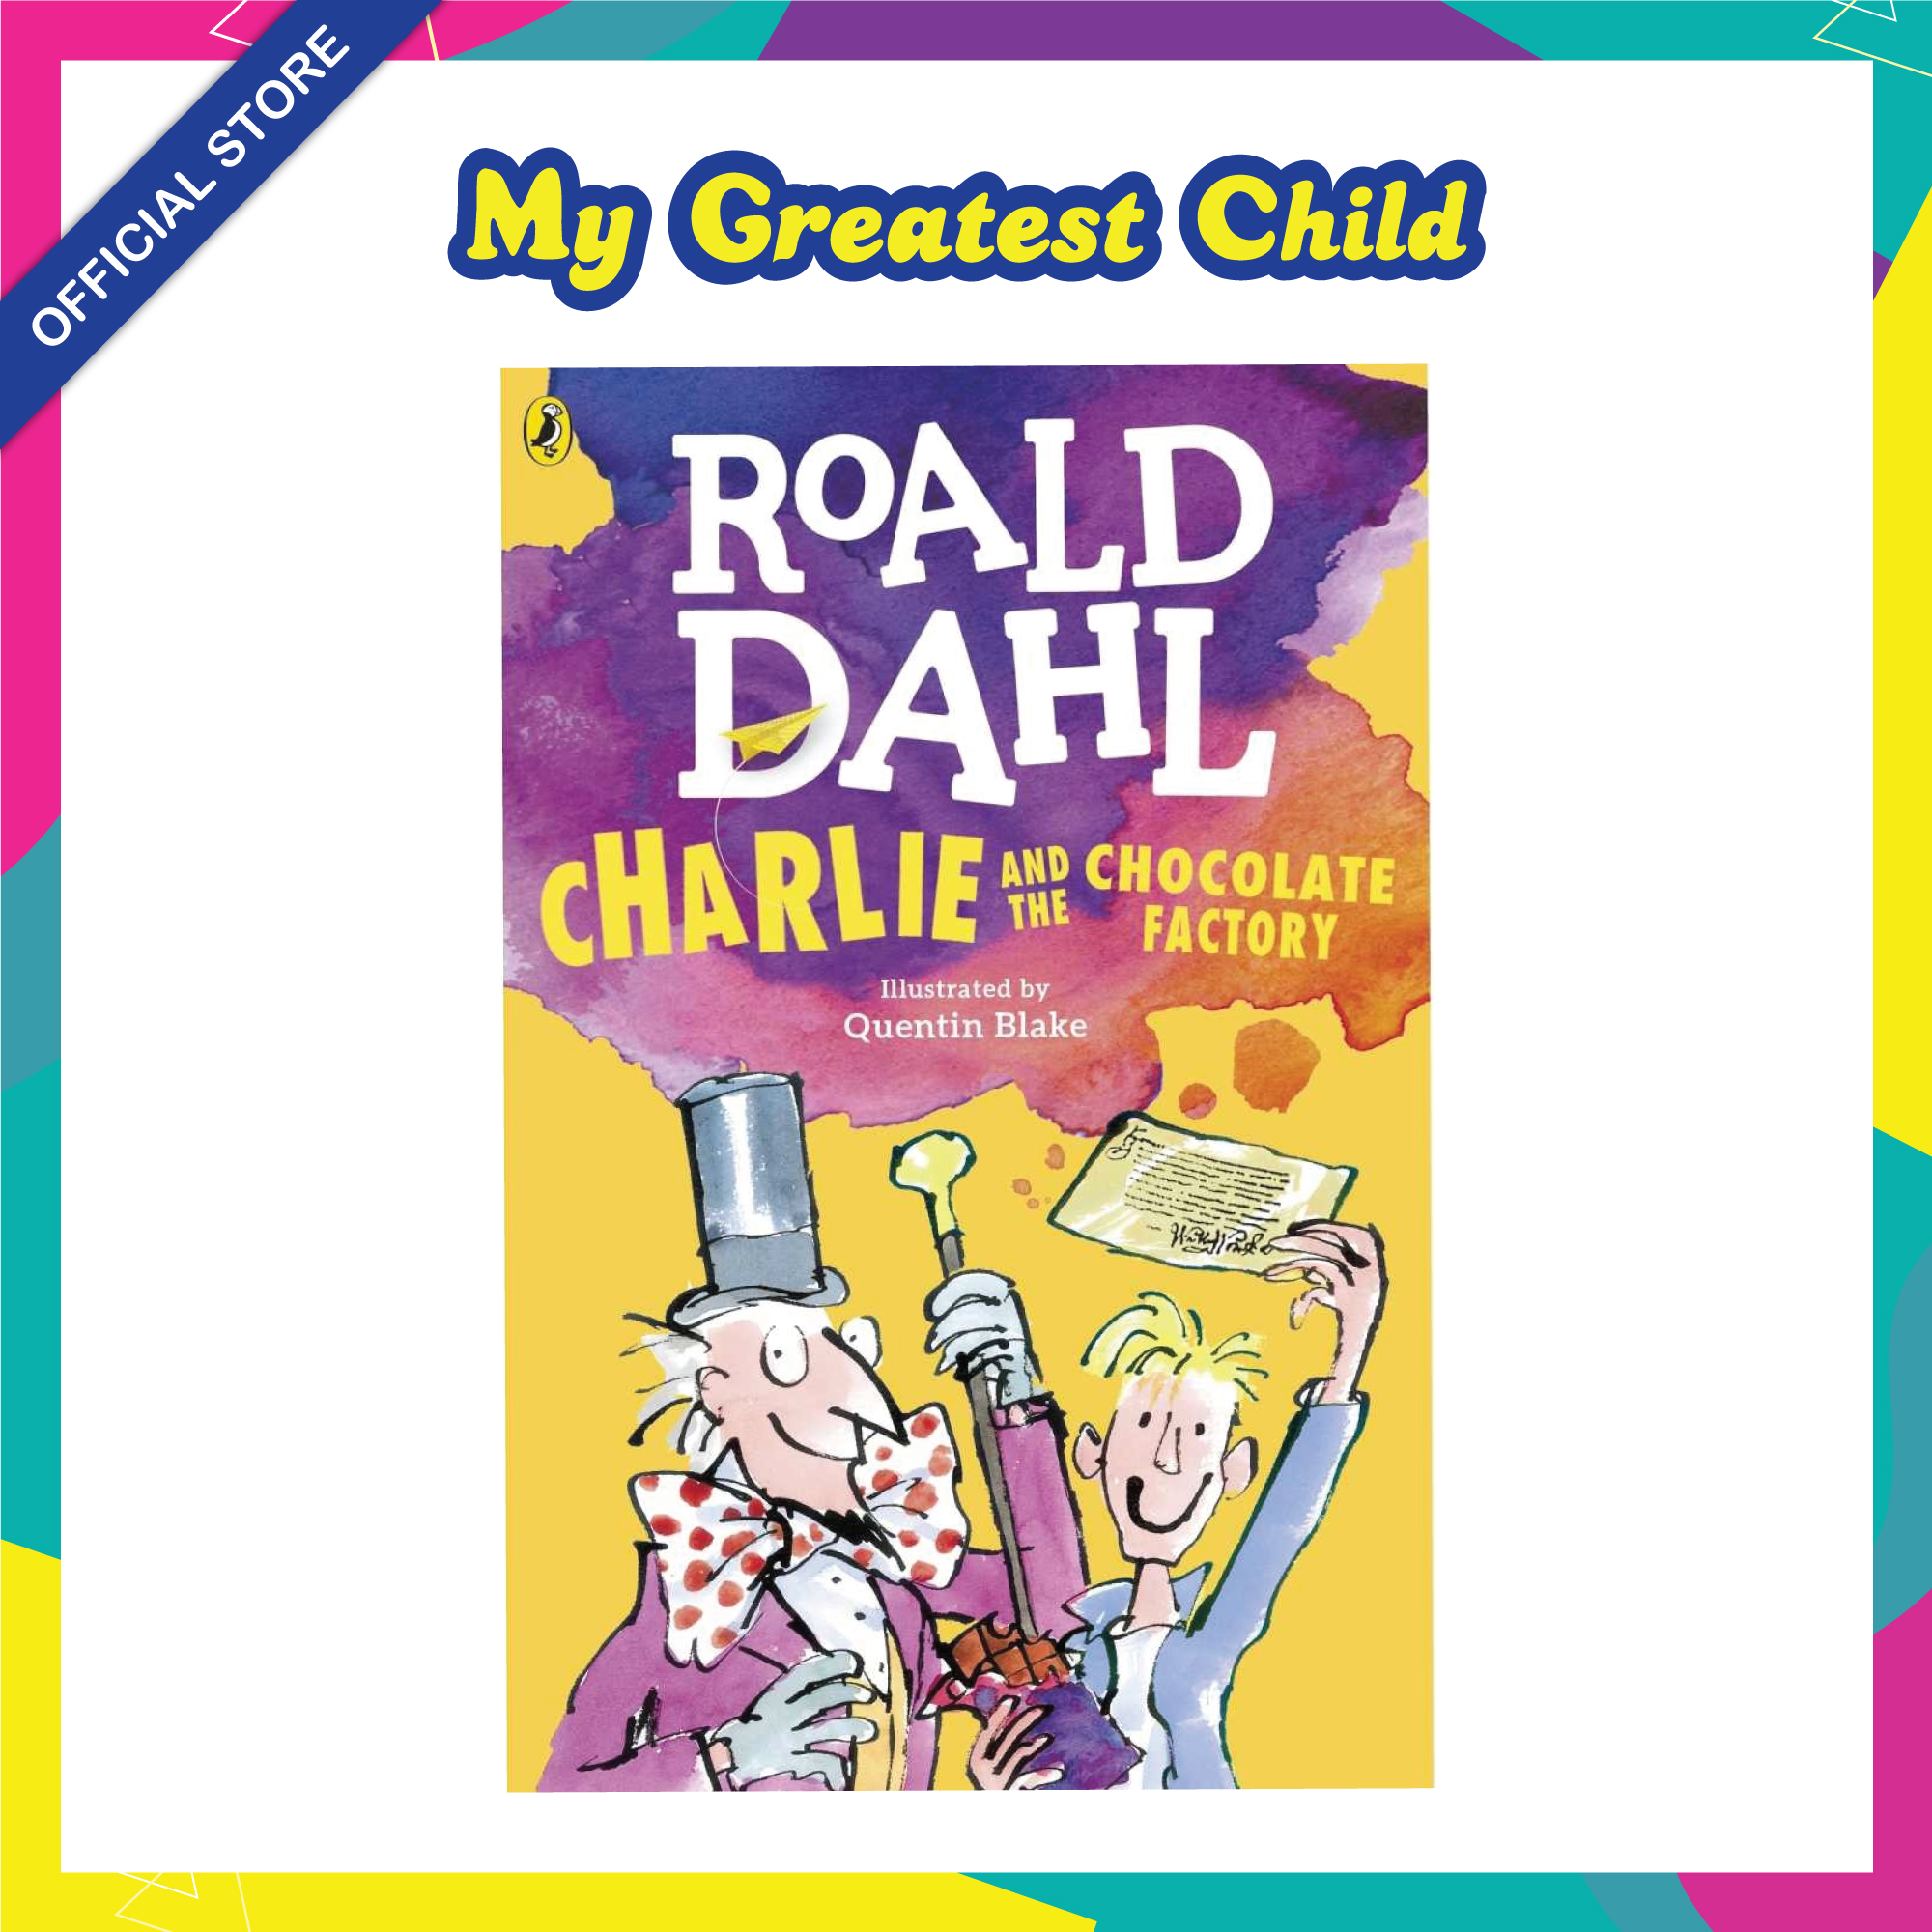 Charlie and the Chocolate Factory - Roald Dahl English Paperback Childrens Book  (For Ages 7+)